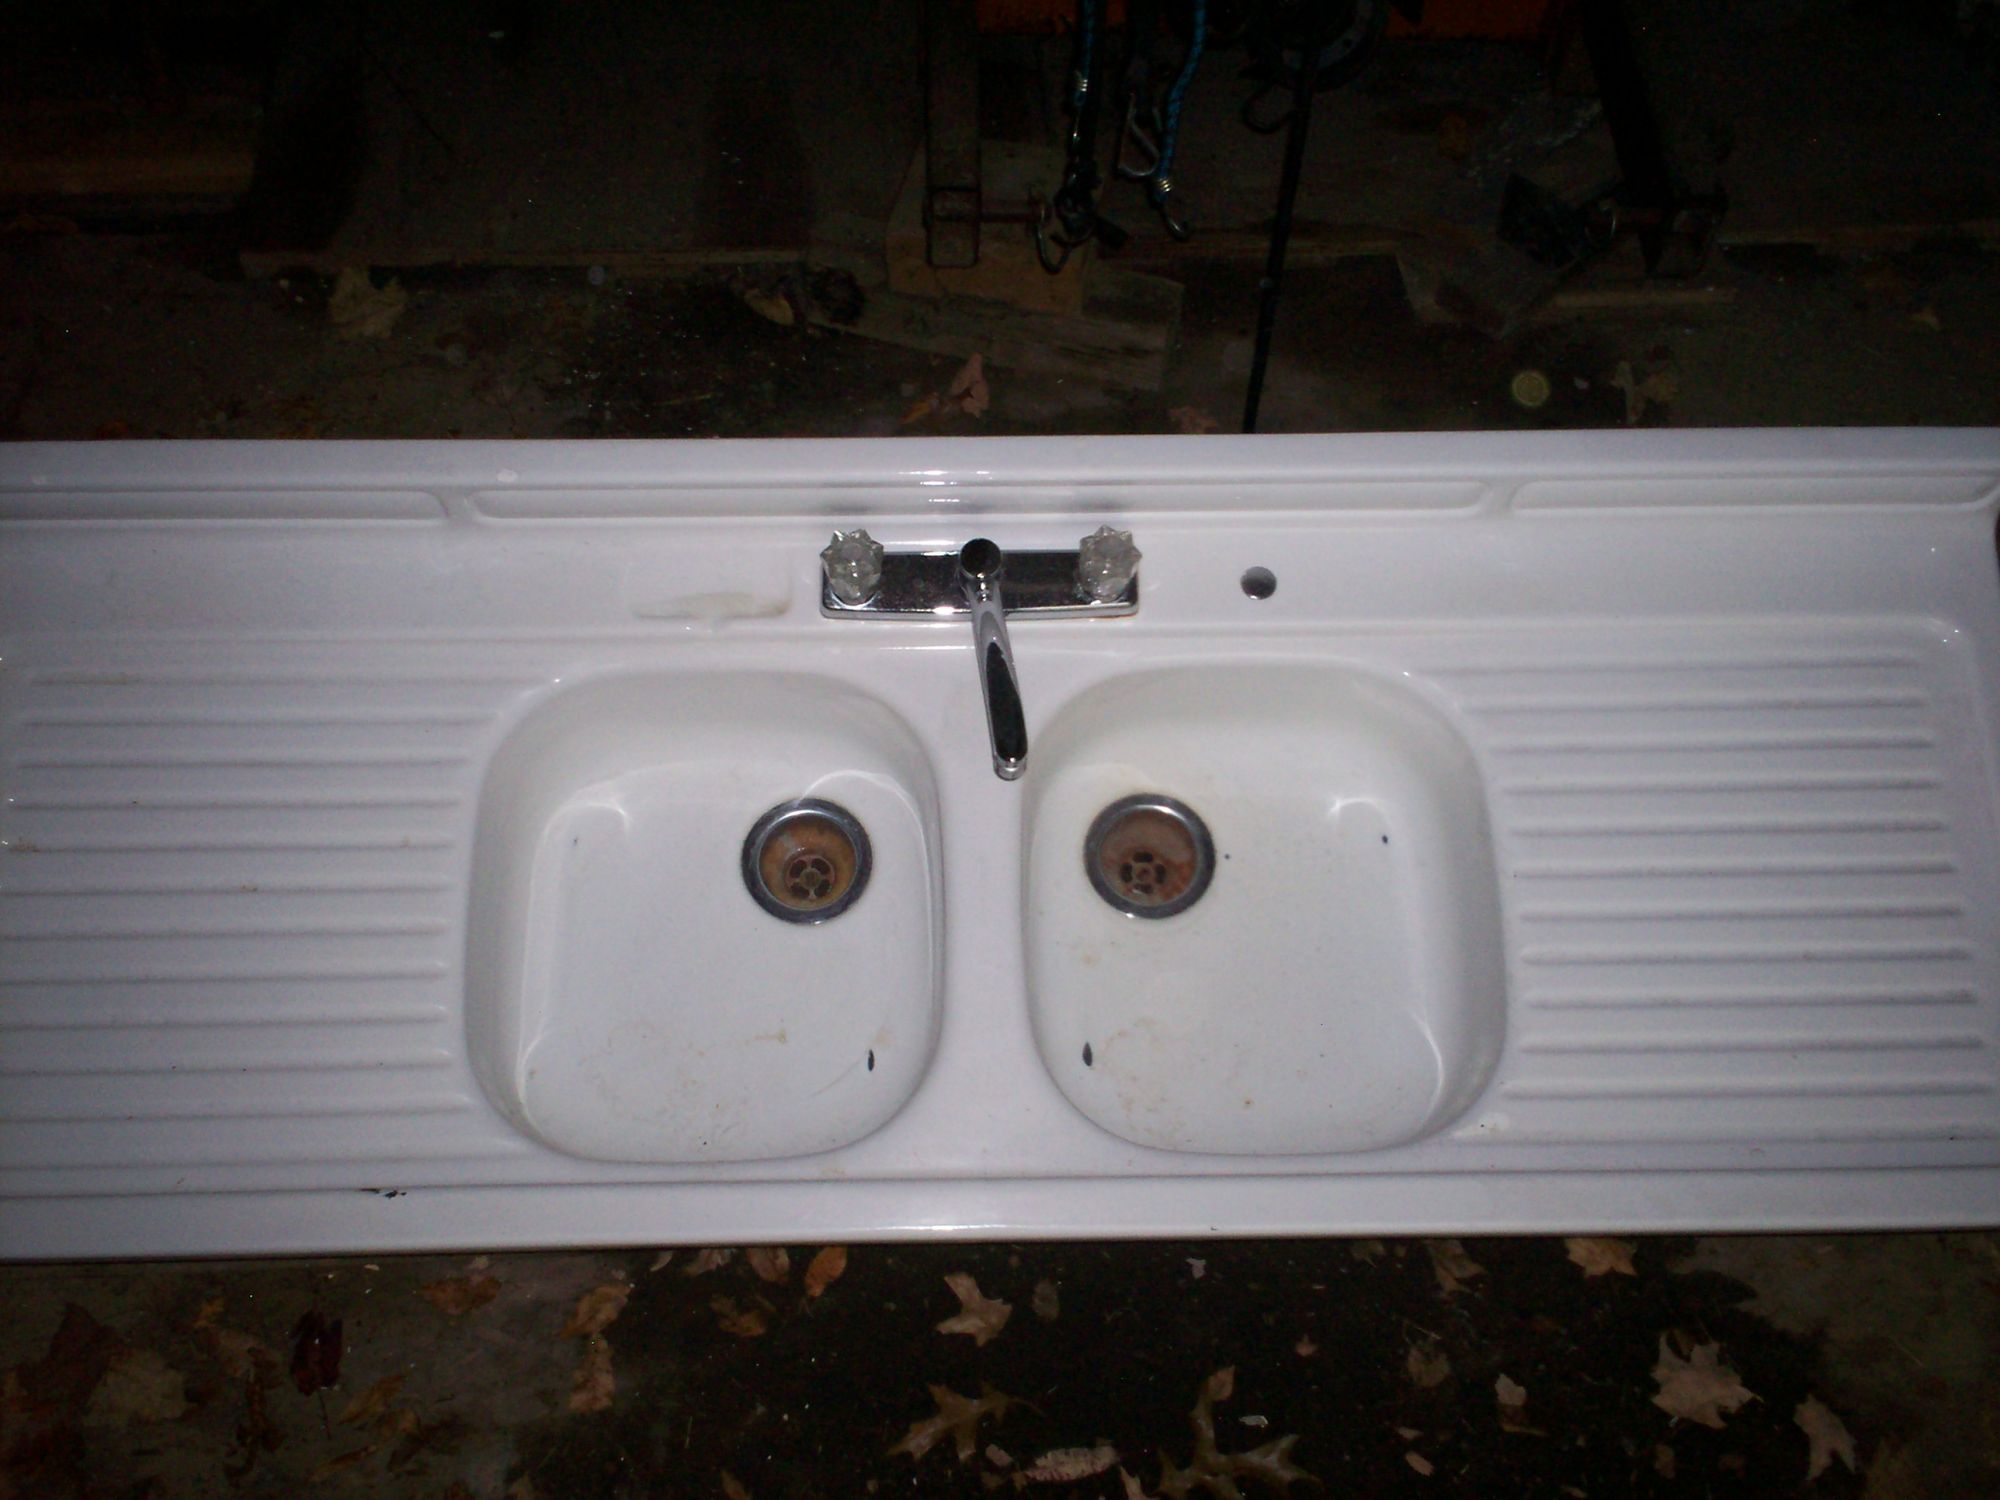 ANTIQUE PORCELAIN FARMHOUSE DOUBLE BASIN KITCHEN SINK - For Sale ...